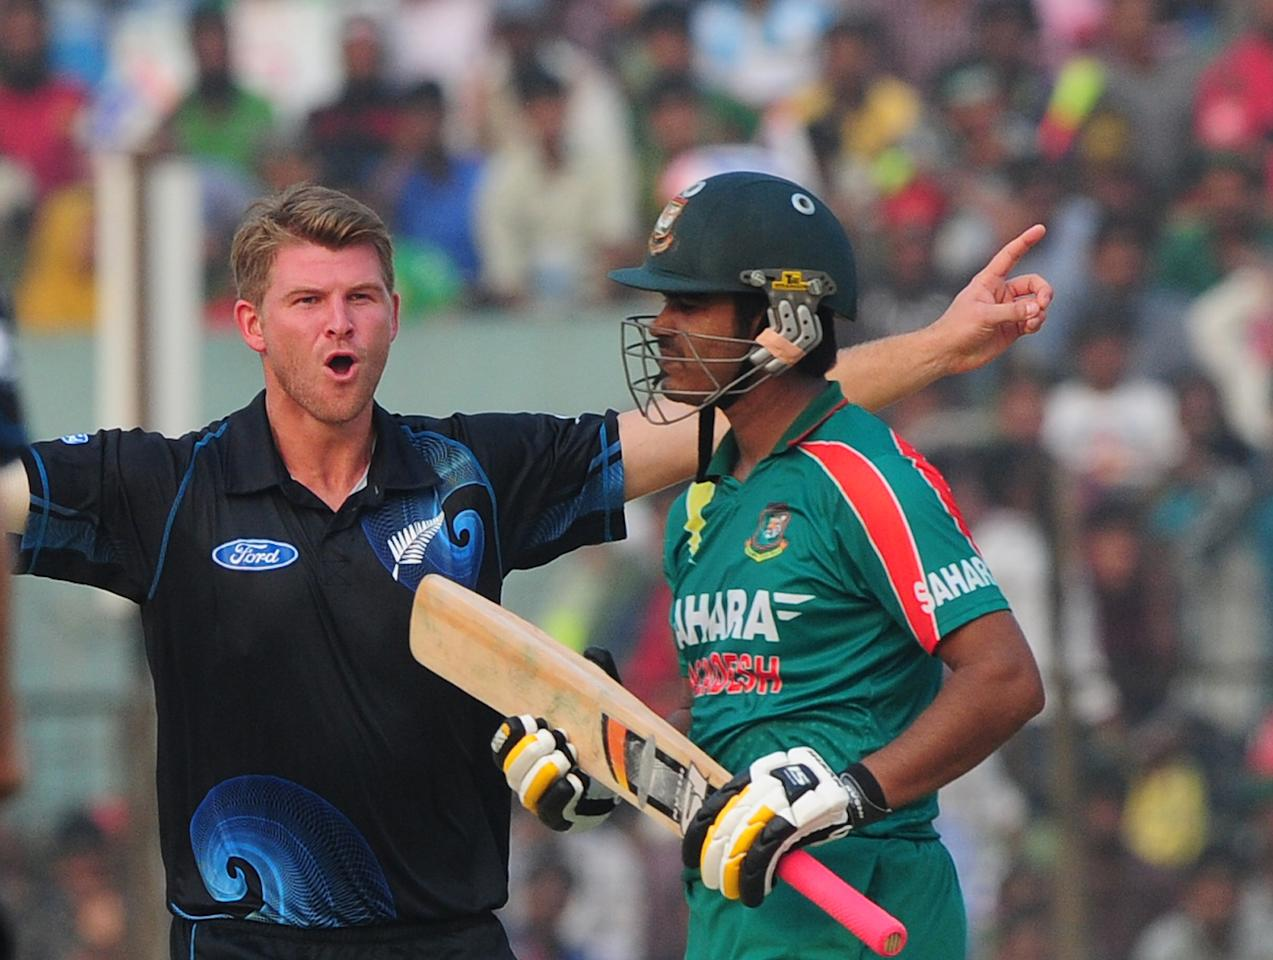 New Zealand bowler Corey Anderson (L) celebrates after the dismissal of Bangladesh batsman Shamsur Rahman (R) during the third One-Day International (ODI) cricket match between Bangladesh and New Zealand at Khan Jahan Ali Stadium in Fatullah on the outskirts of Dhaka on November 3, 2013 . AFP PHOTO/ Munir uz ZAMAN        (Photo credit should read MUNIR UZ ZAMAN/AFP/Getty Images)